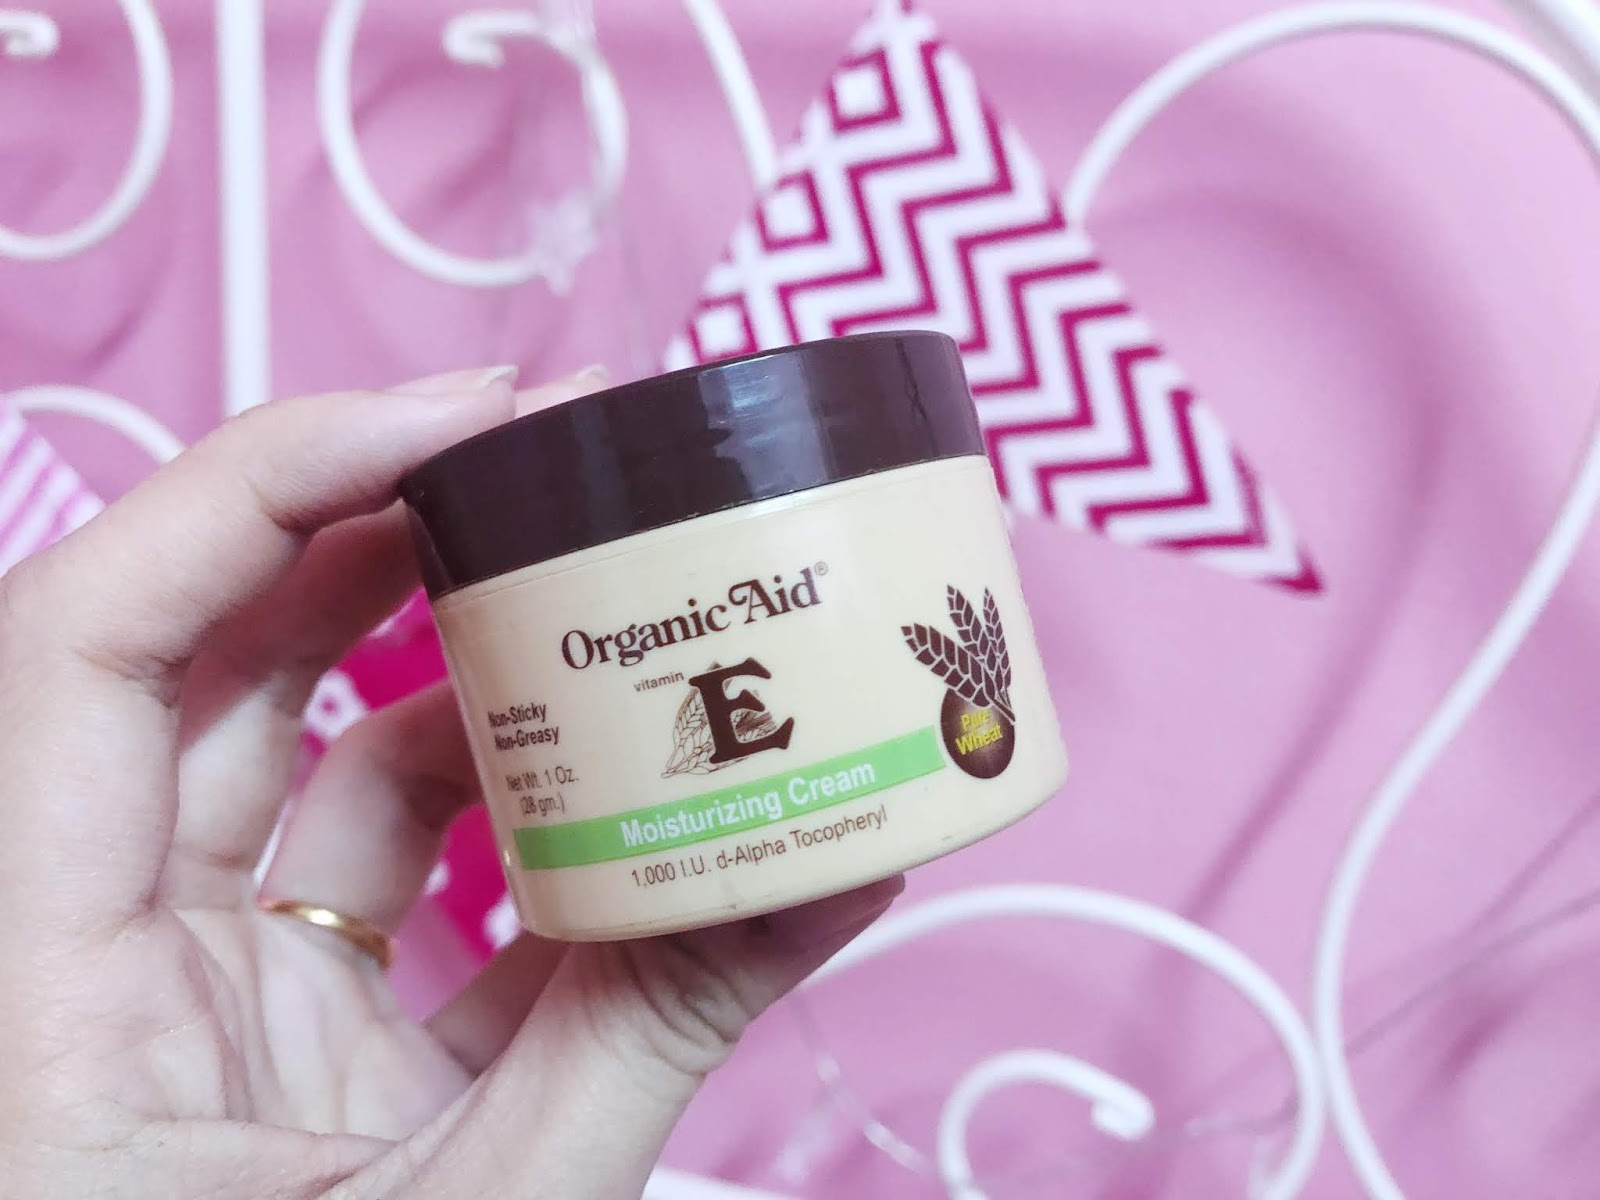 Organic Aid Vitamin E Moisturizing Cream Review ~ IMAN ABDUL RAHIM